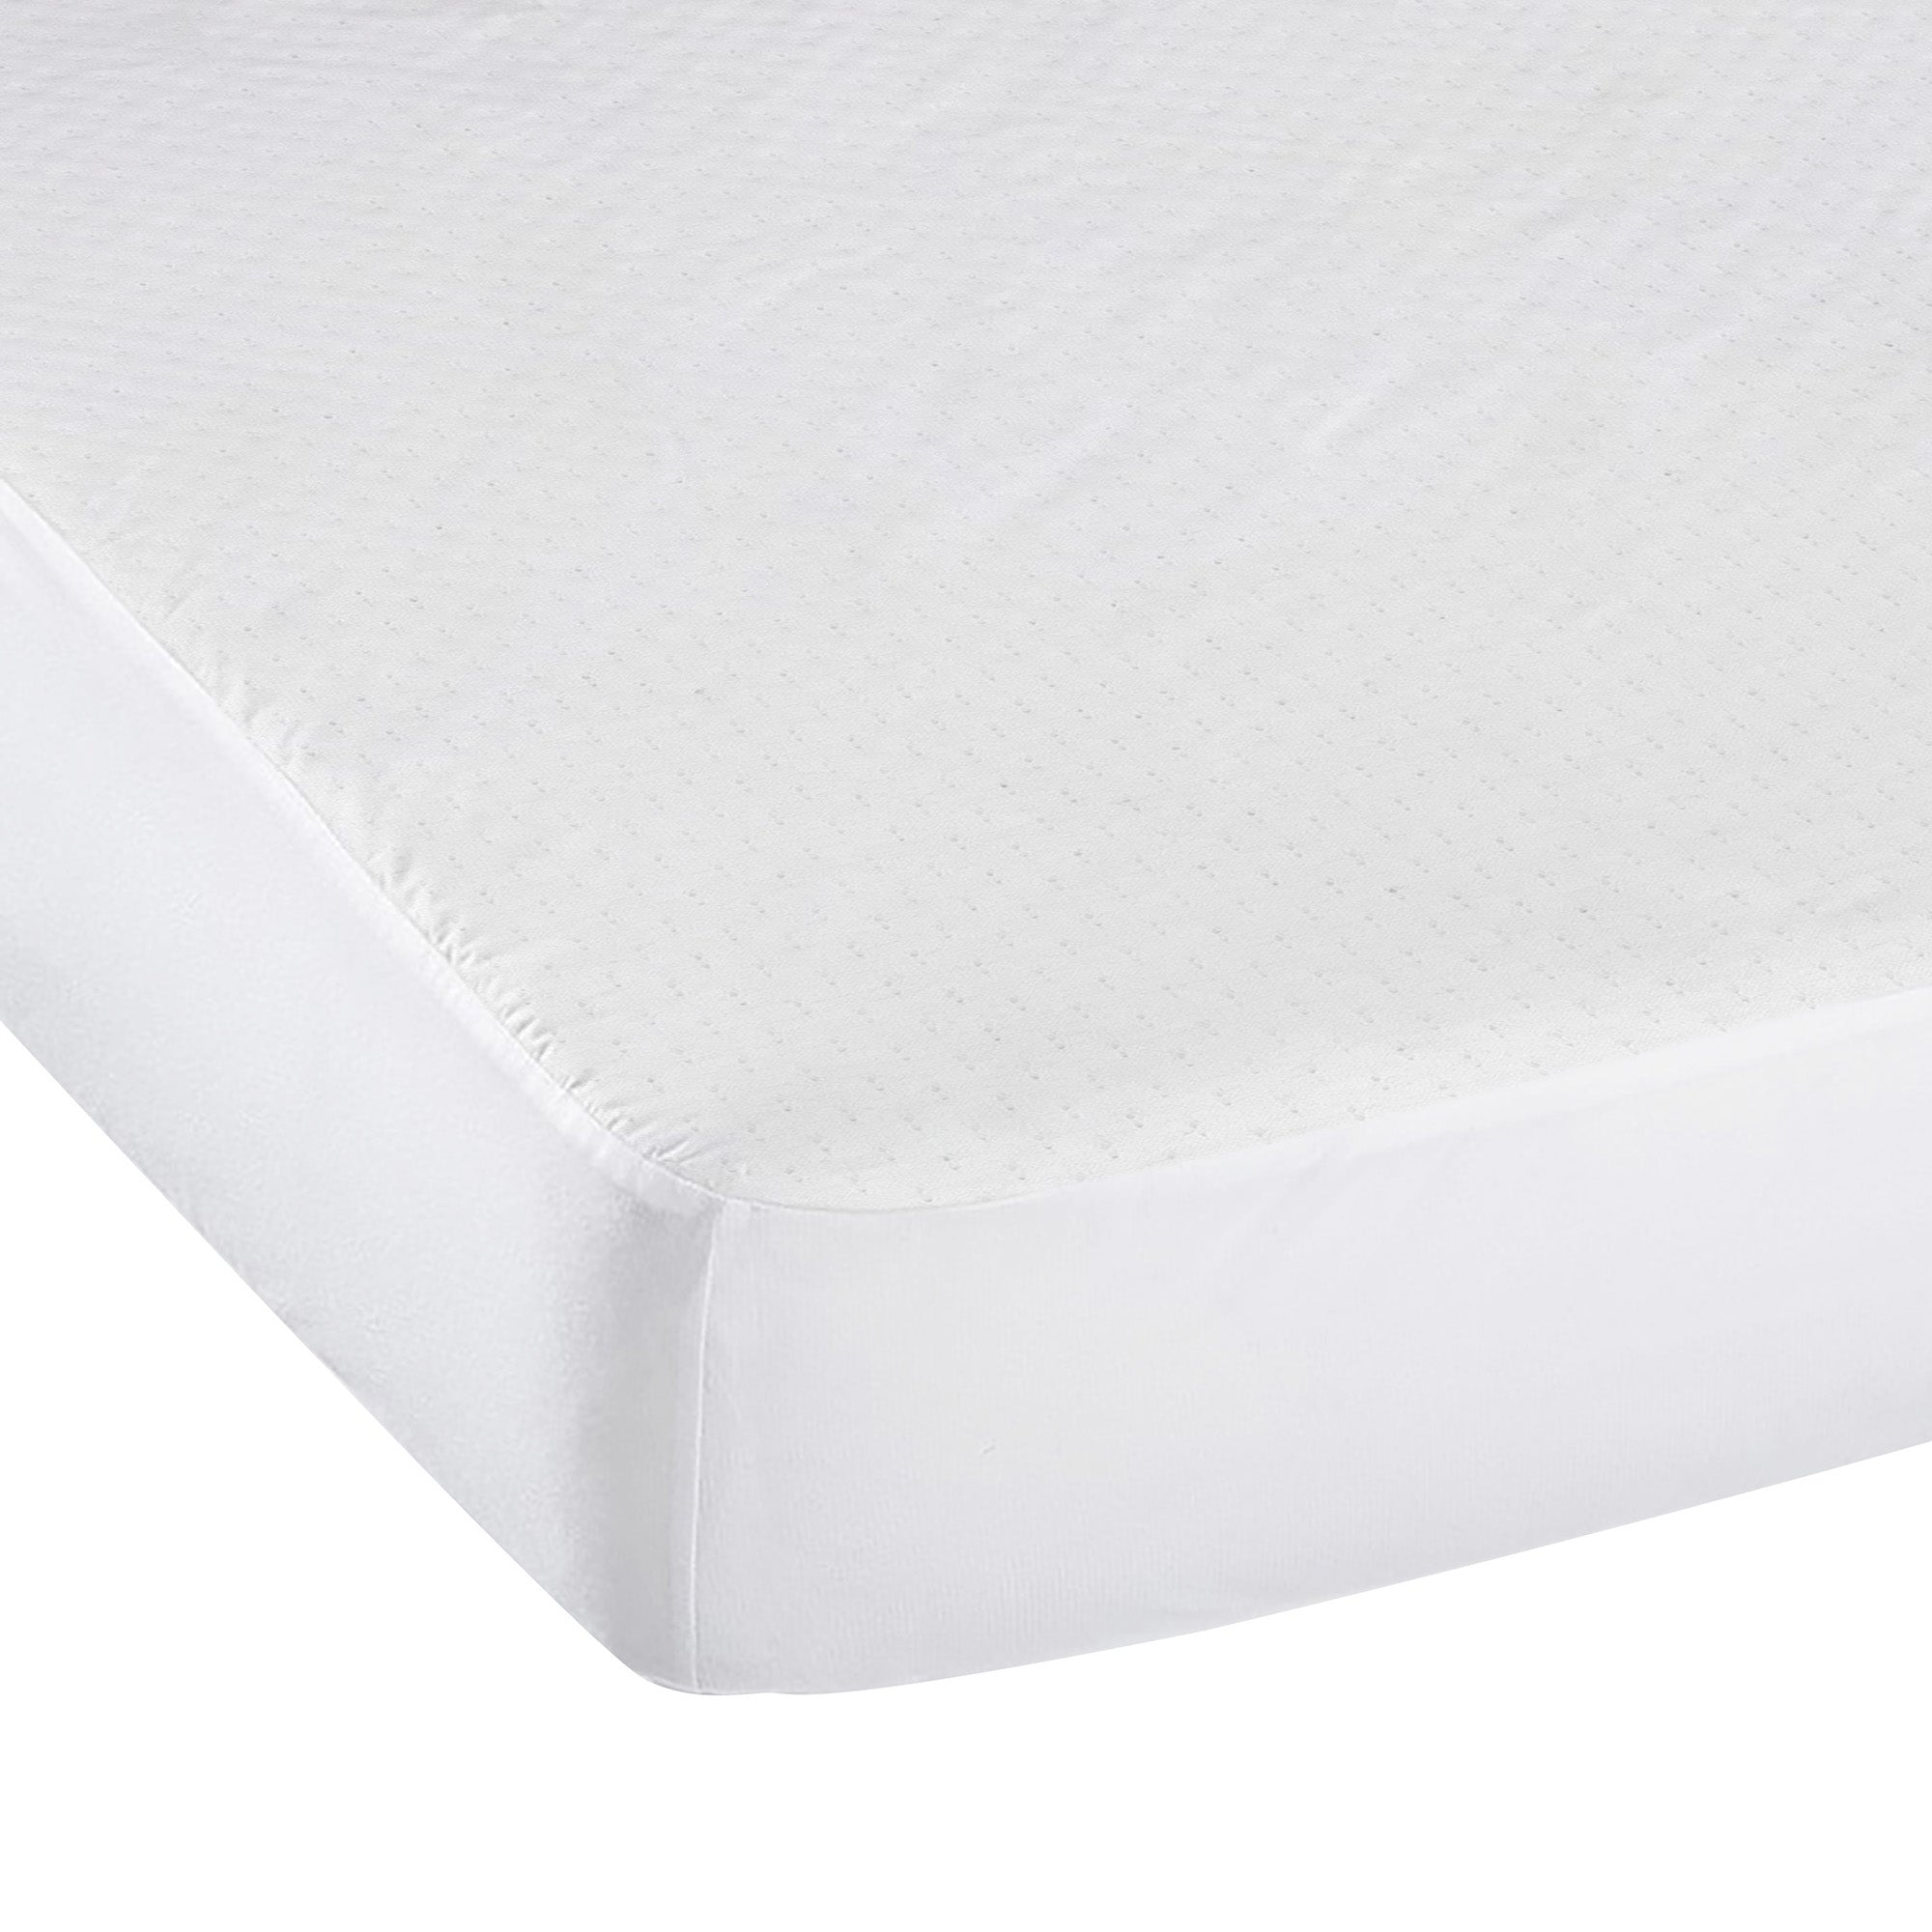 Light Waterproof | Crib Sheet Cover